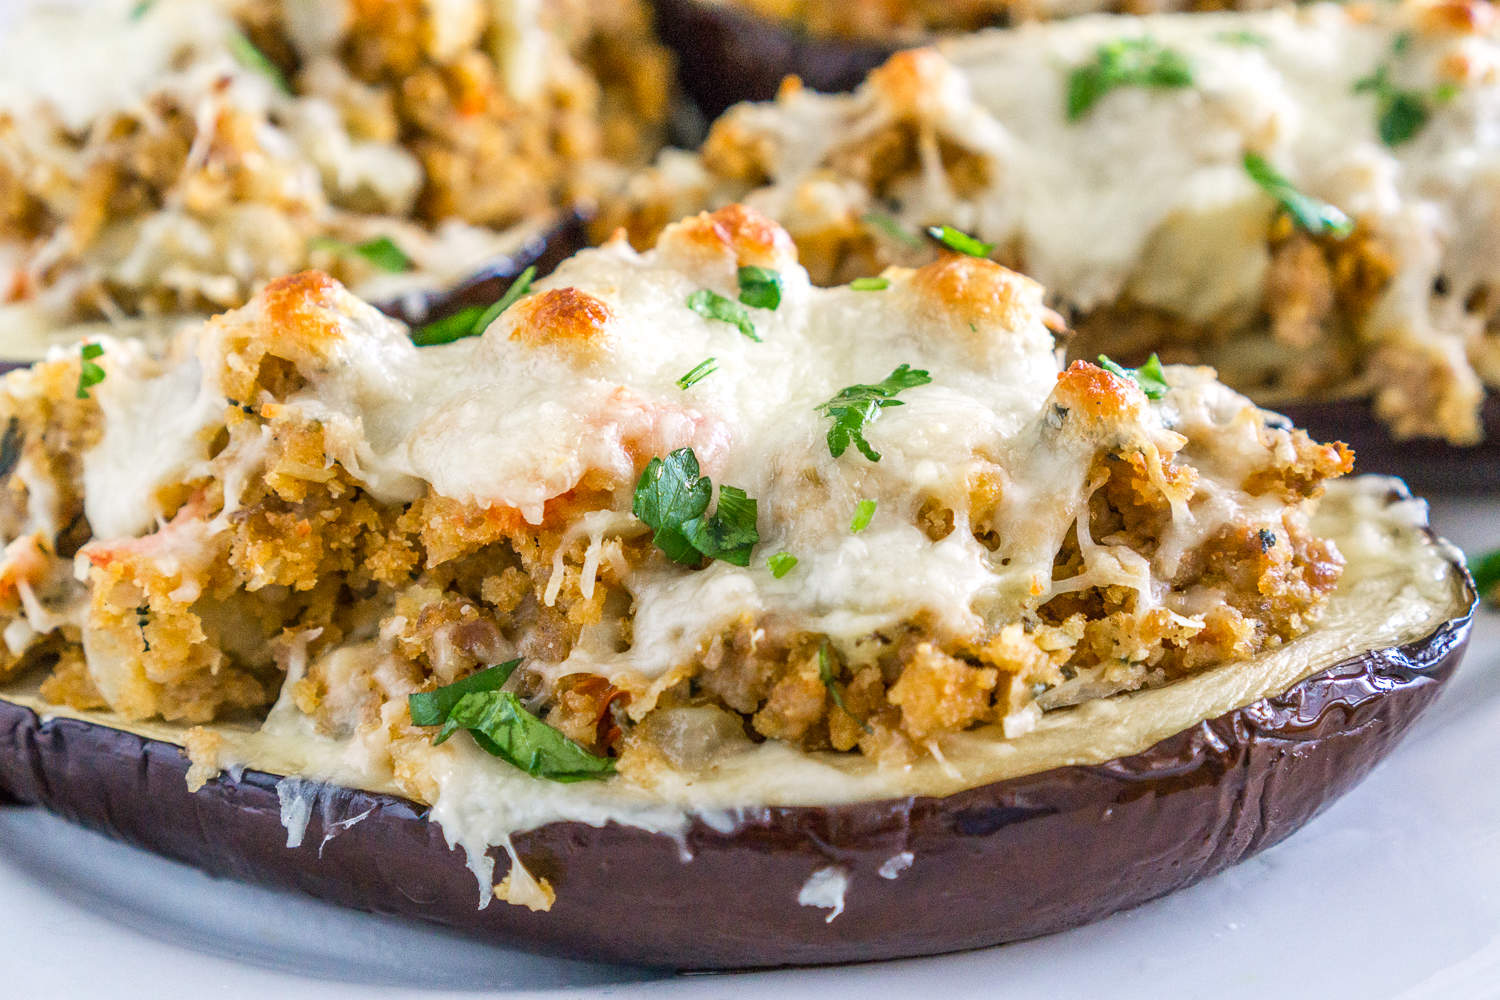 eggplant stuffed with sausage topped with cheese